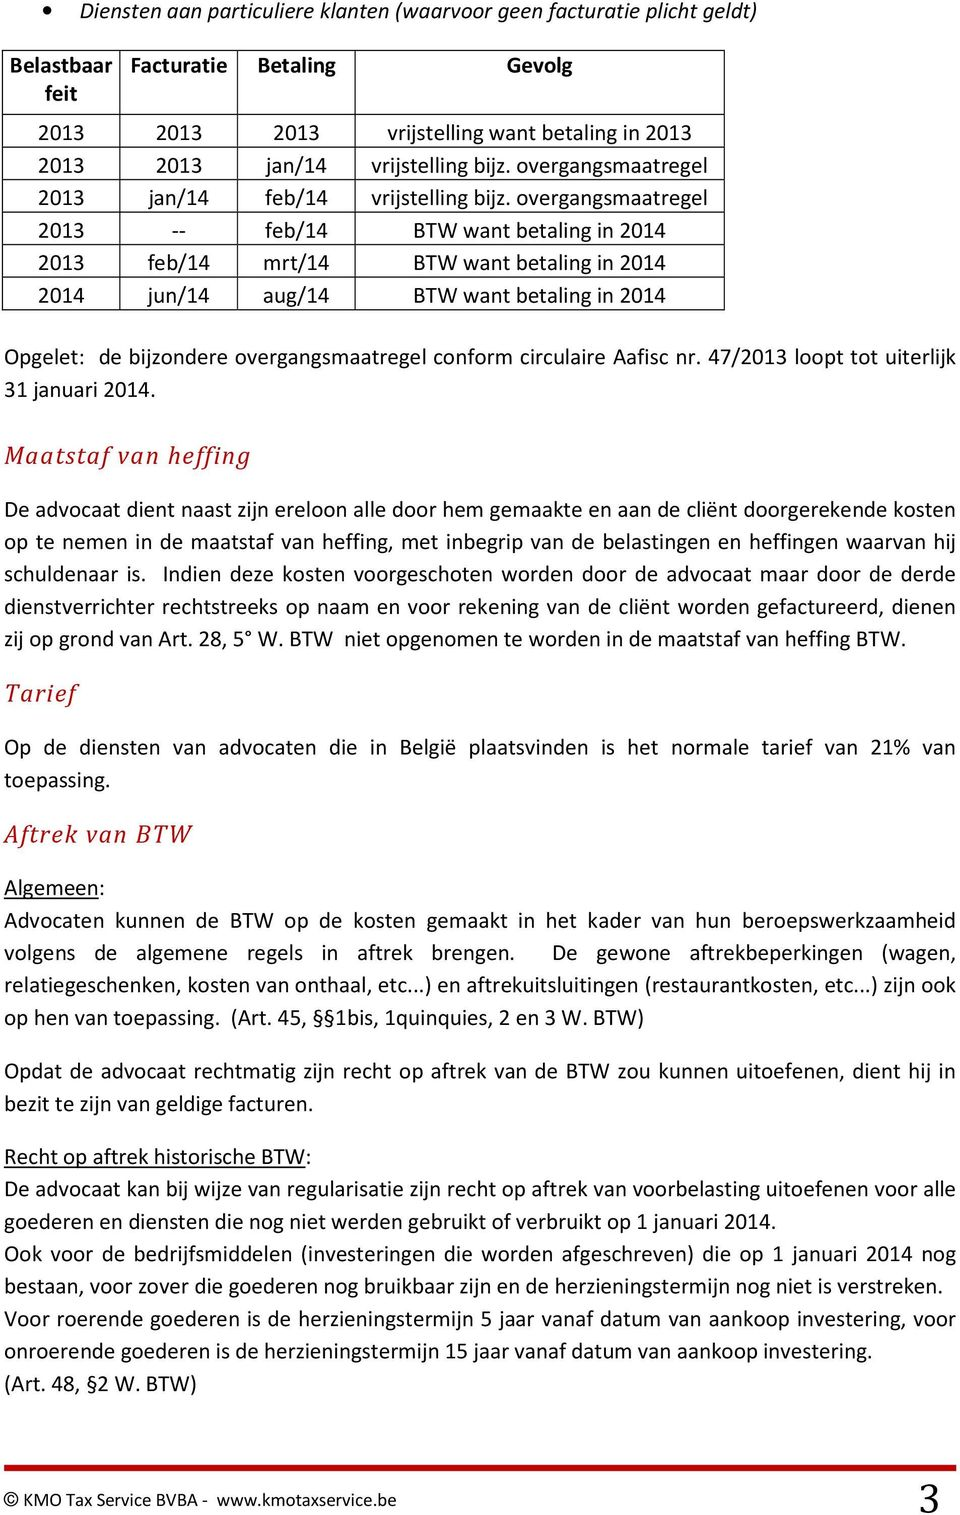 overgangsmaatregel 2013 -- feb/14 BTW want betaling in 2014 2013 feb/14 mrt/14 BTW want betaling in 2014 2014 jun/14 aug/14 BTW want betaling in 2014 Opgelet: de bijzondere overgangsmaatregel conform